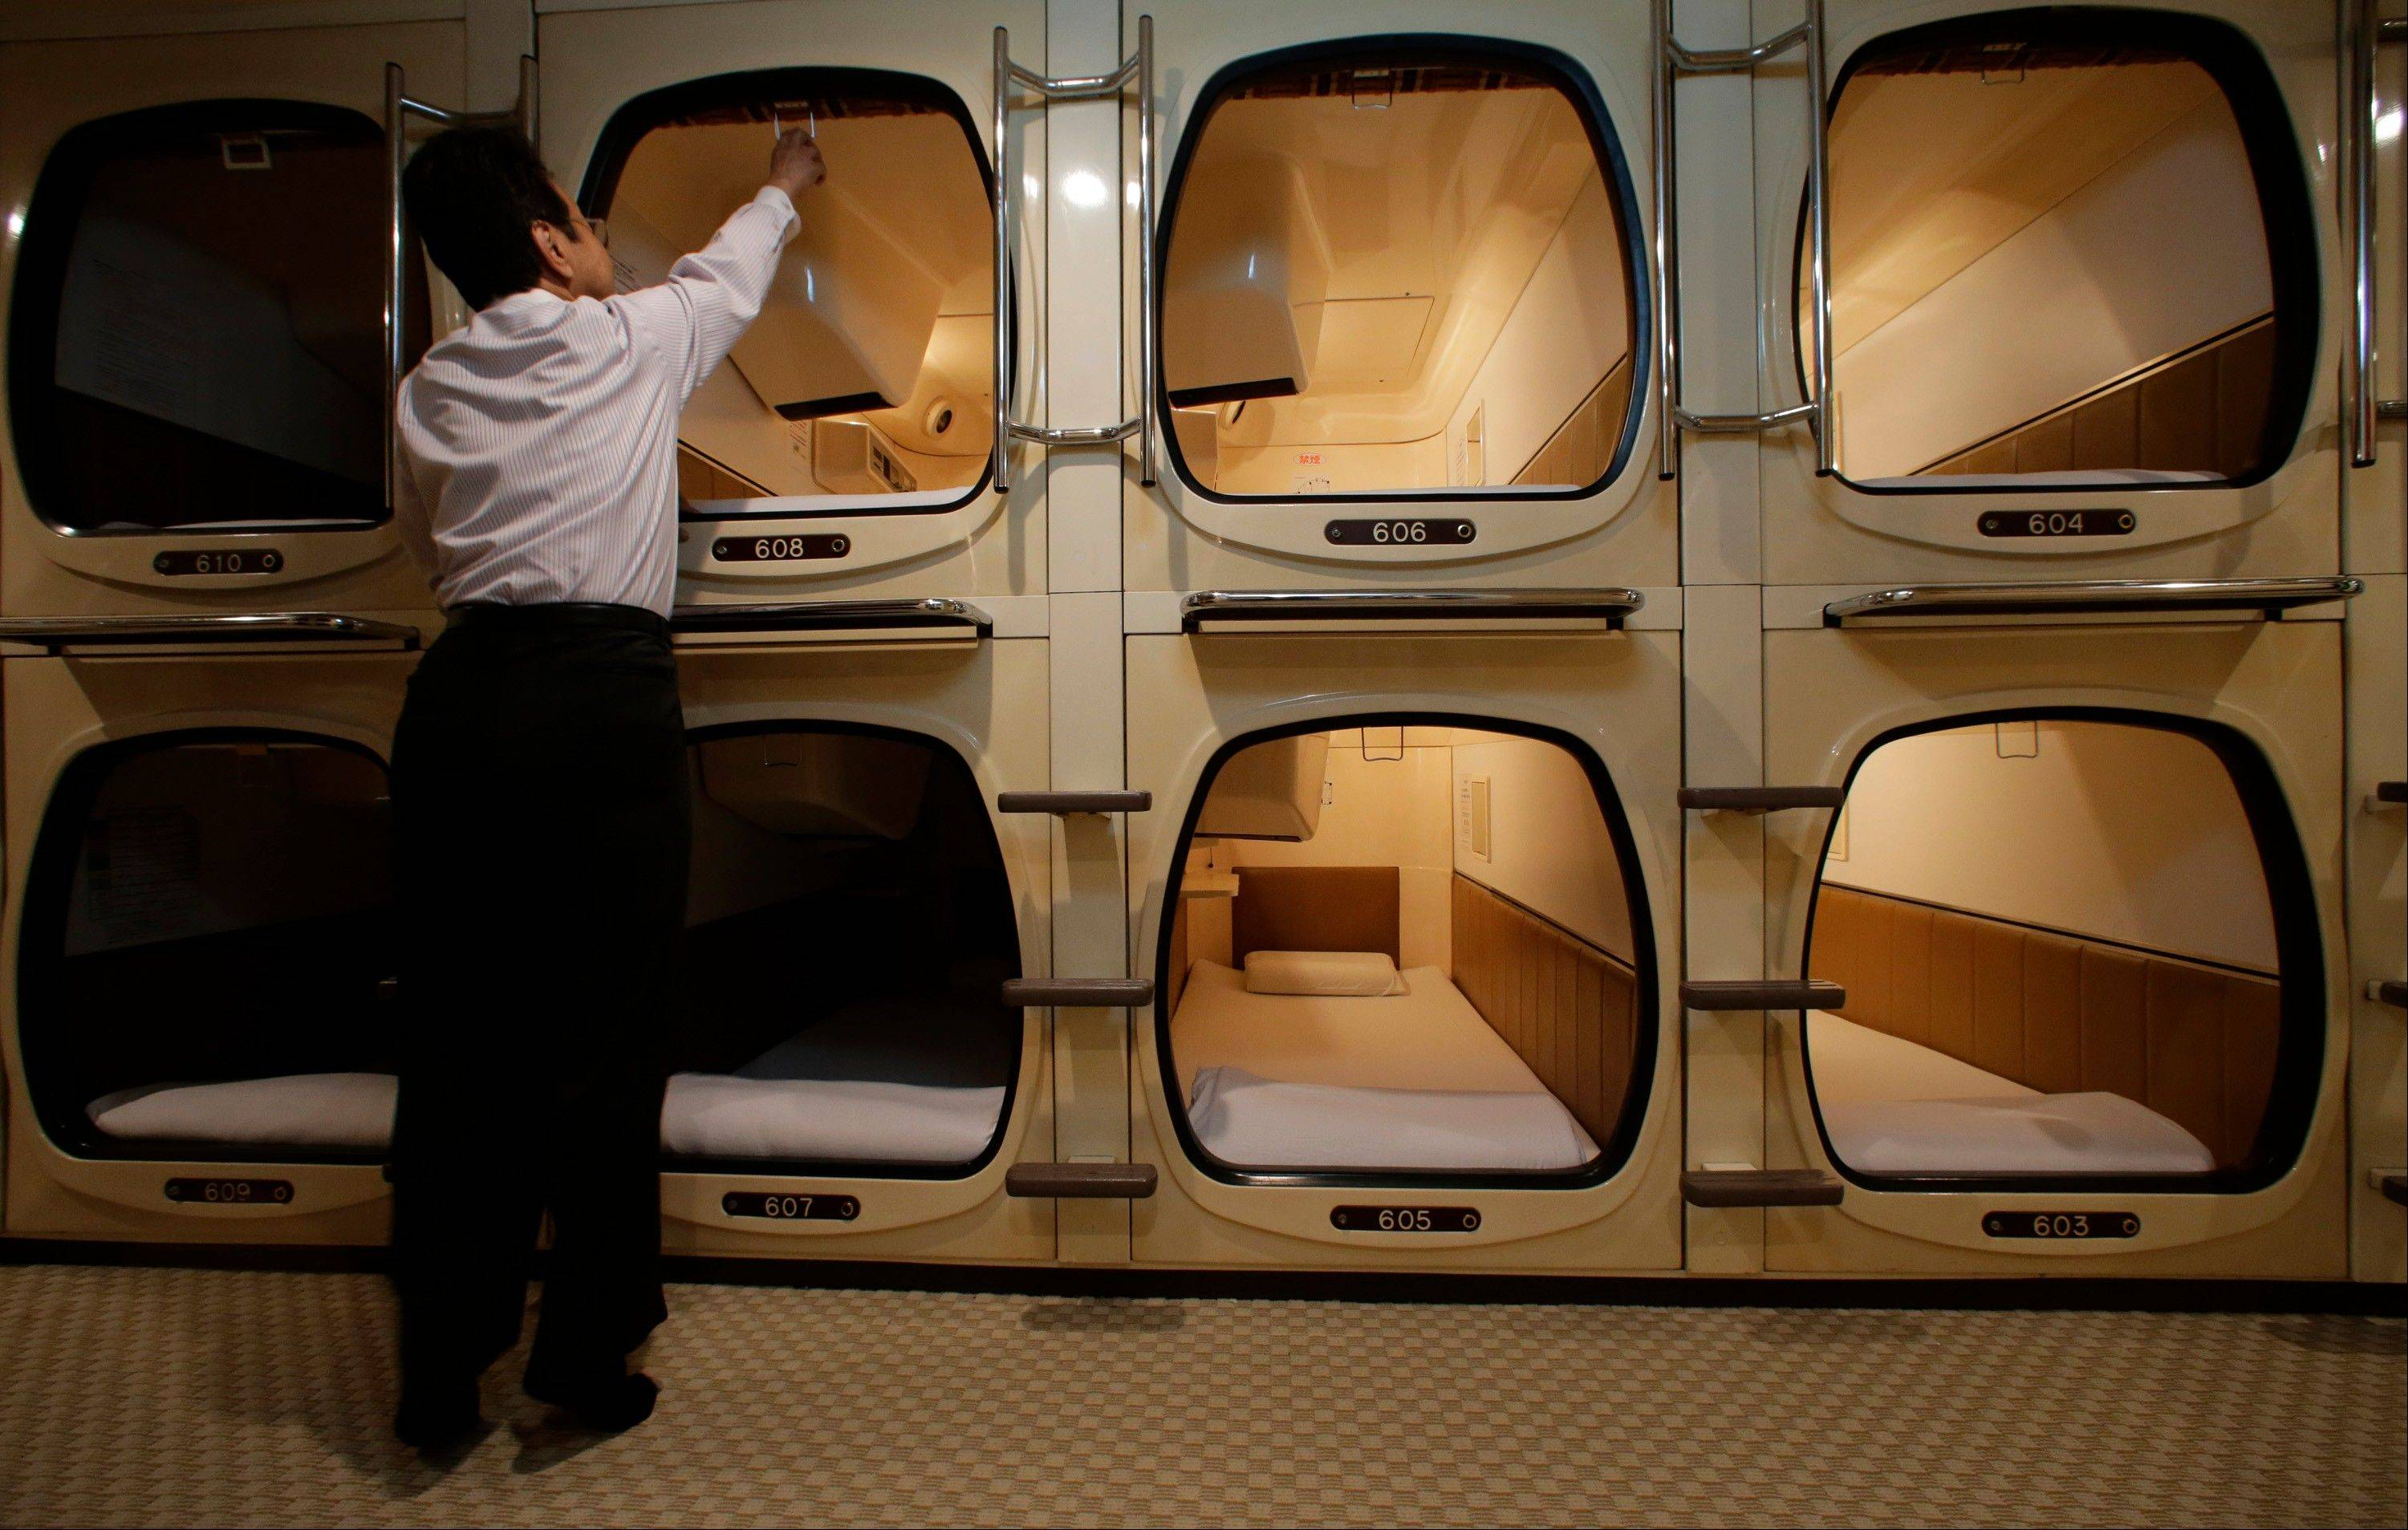 Photo, manager Akiyoshi Kaneko checks out one of the capsule rooms at the Capsule & Sauna Century Shibuya in Tokyo.